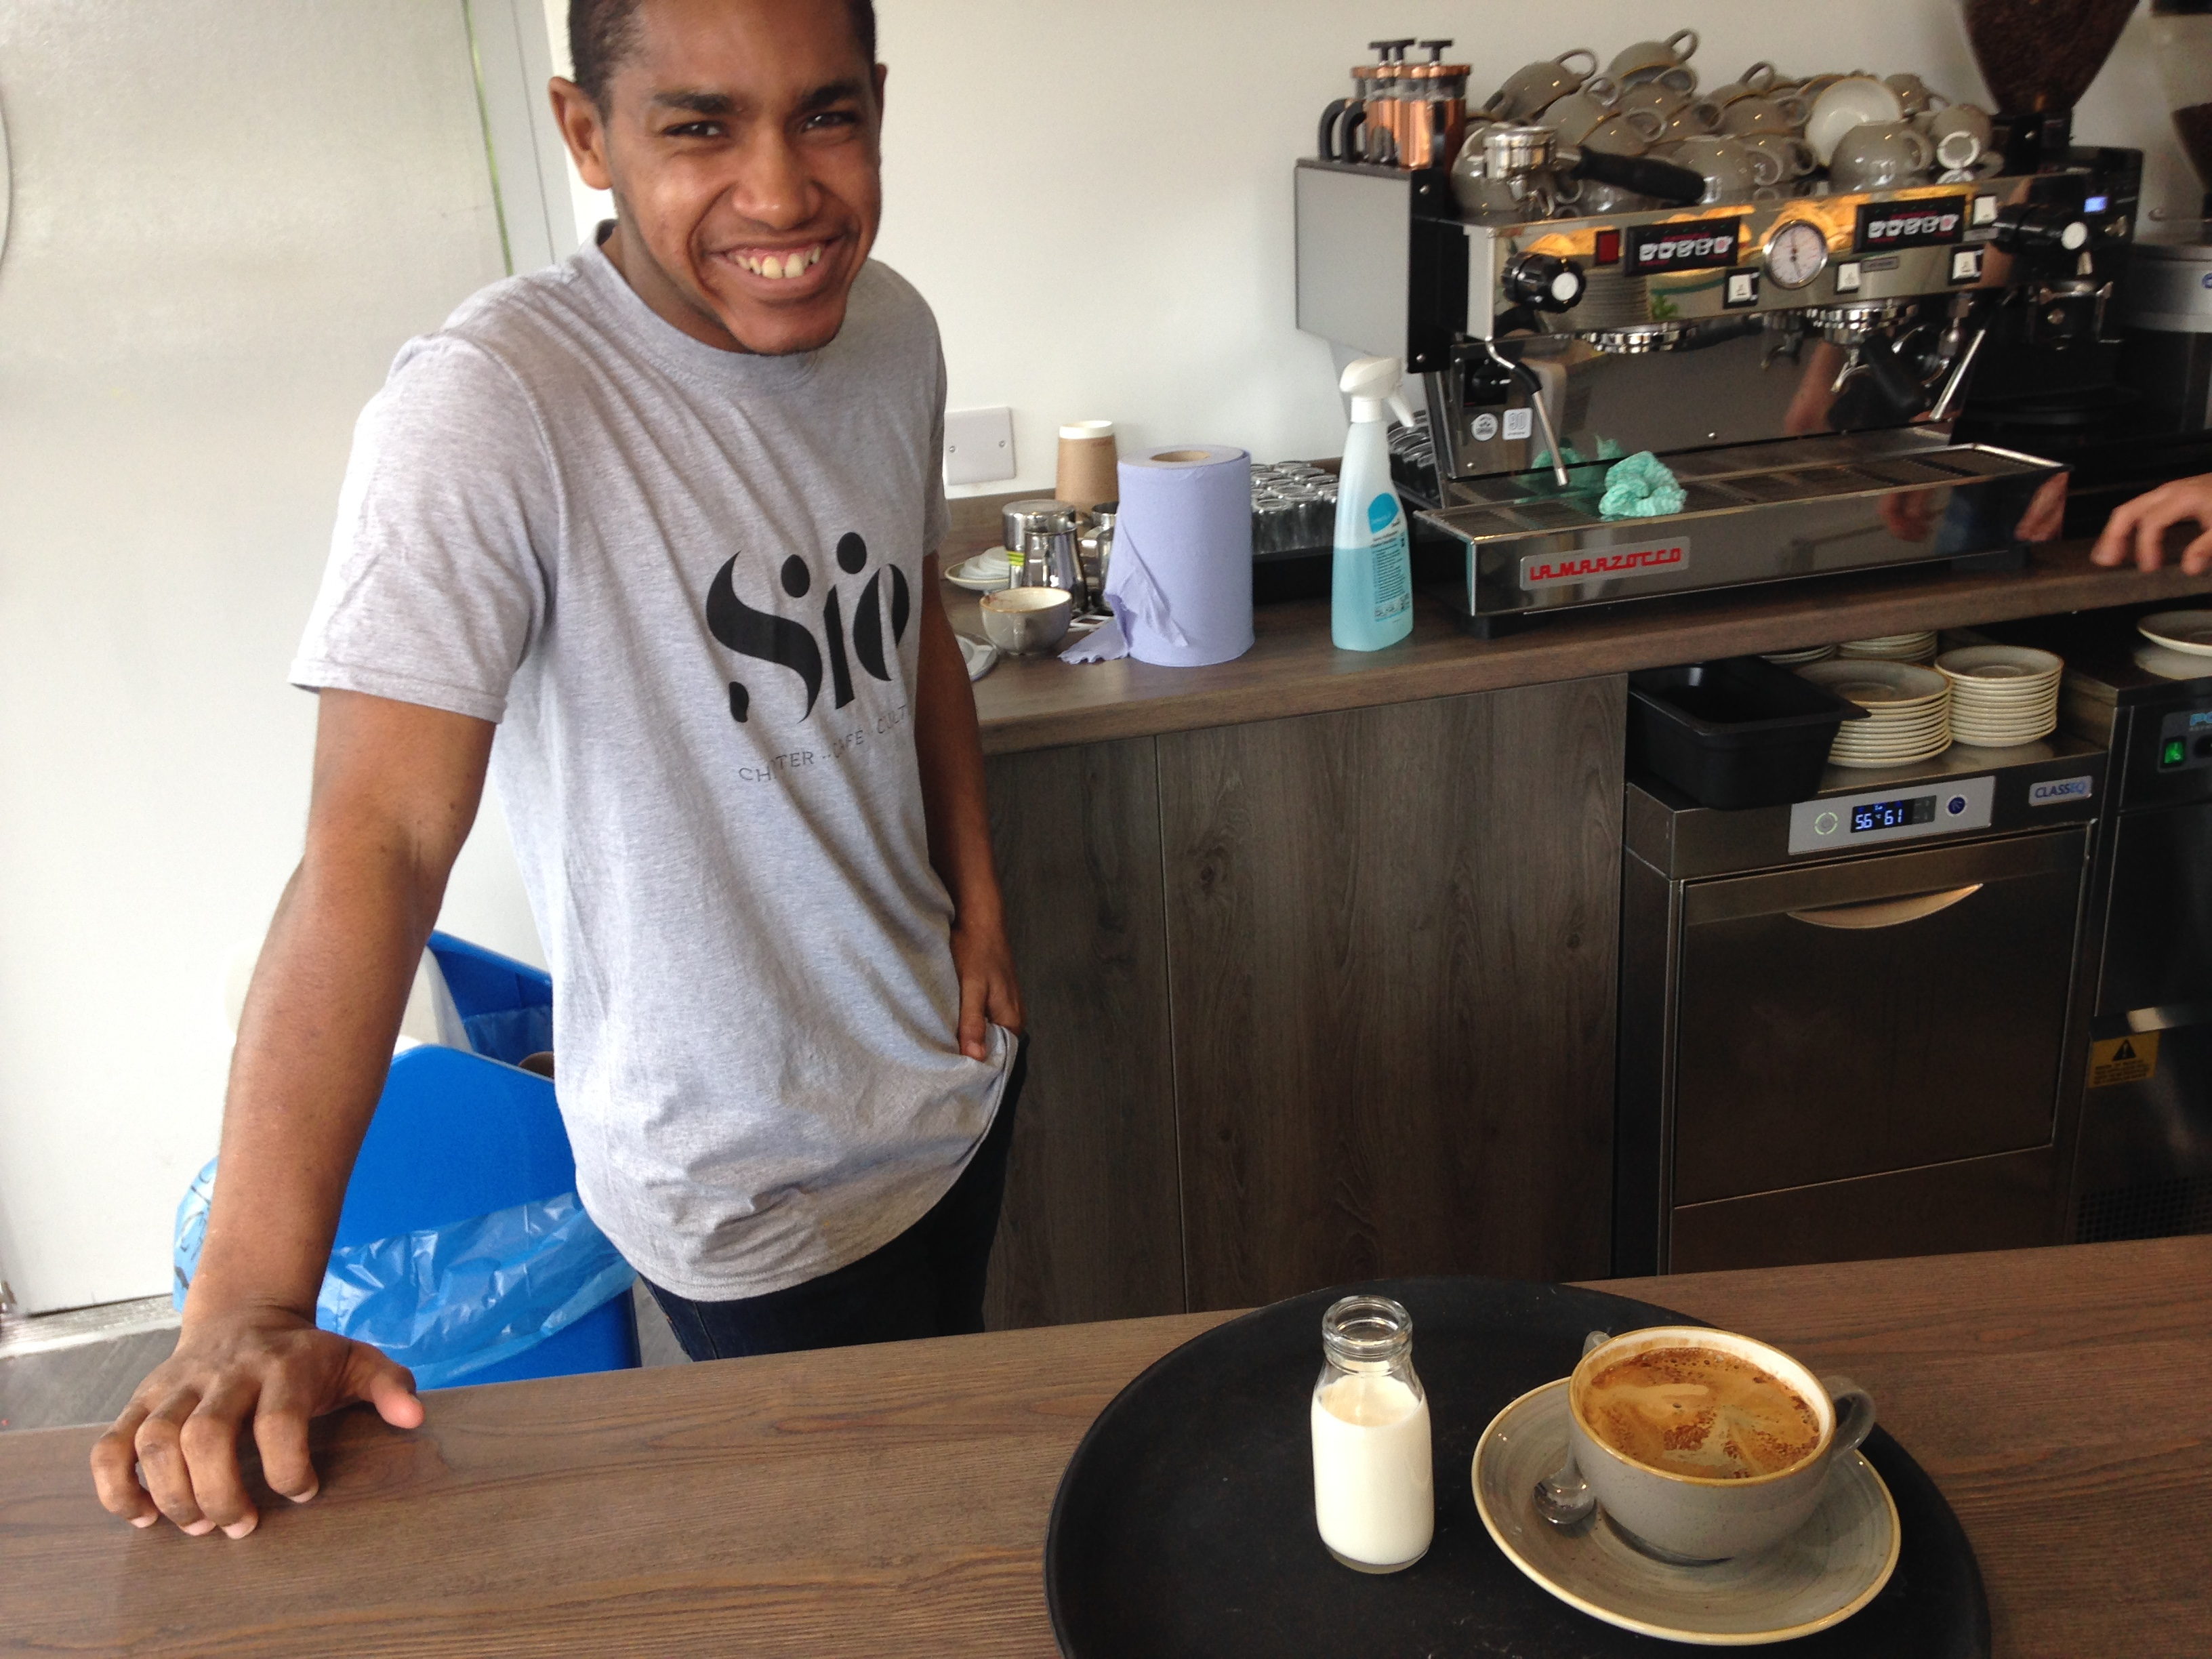 Young man working in a cafe